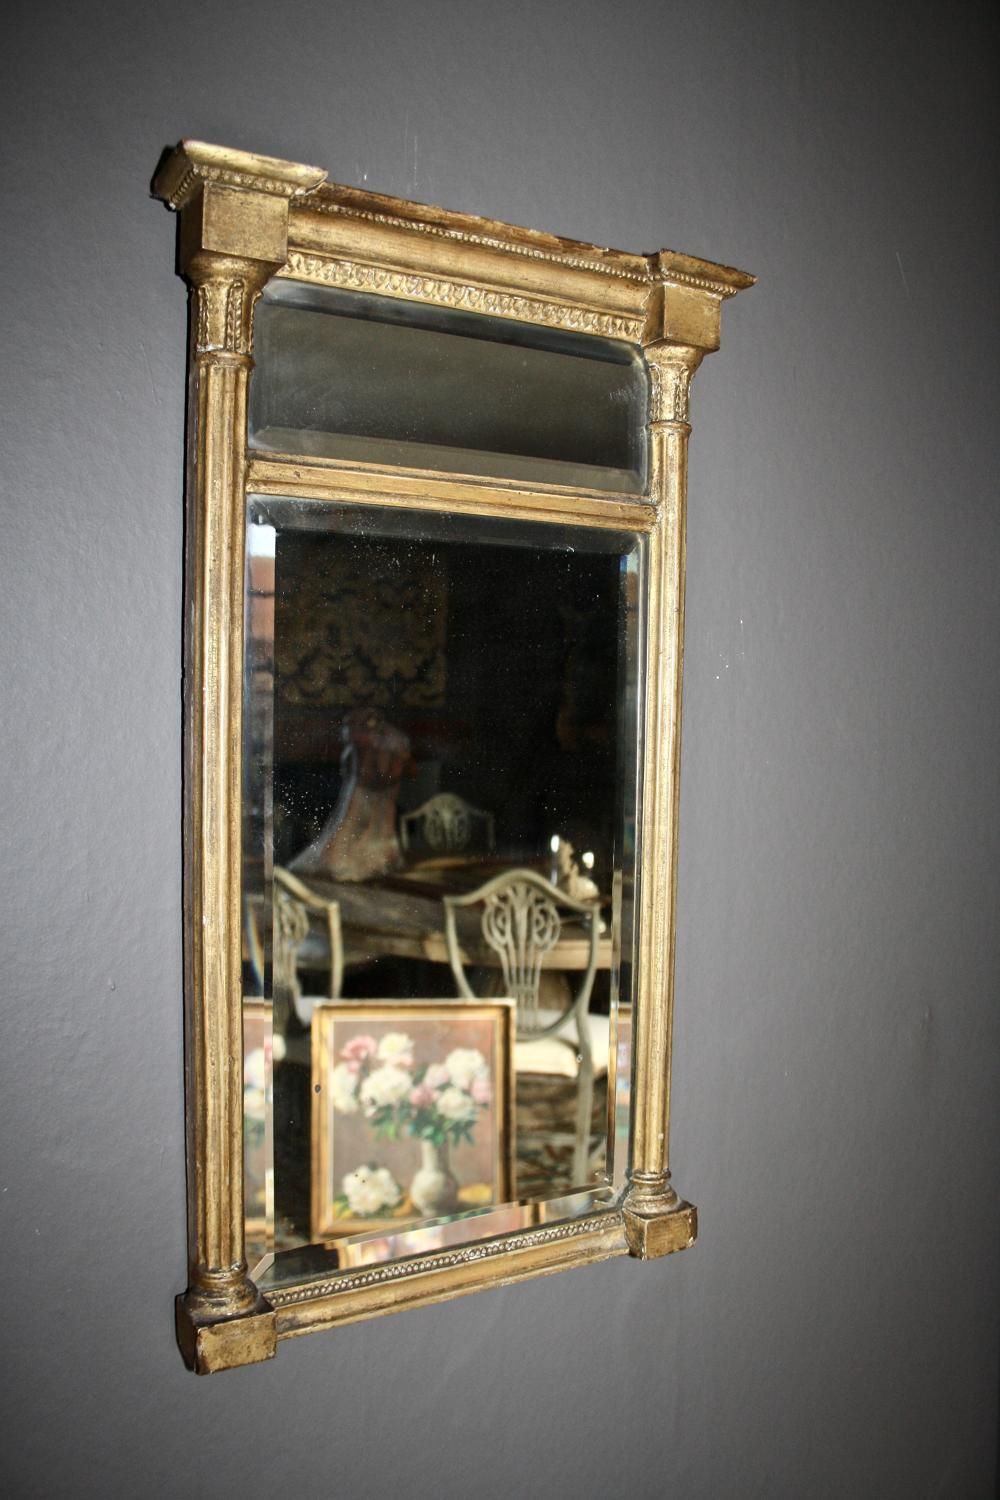 19th century giltwood mirror with bevilled glass